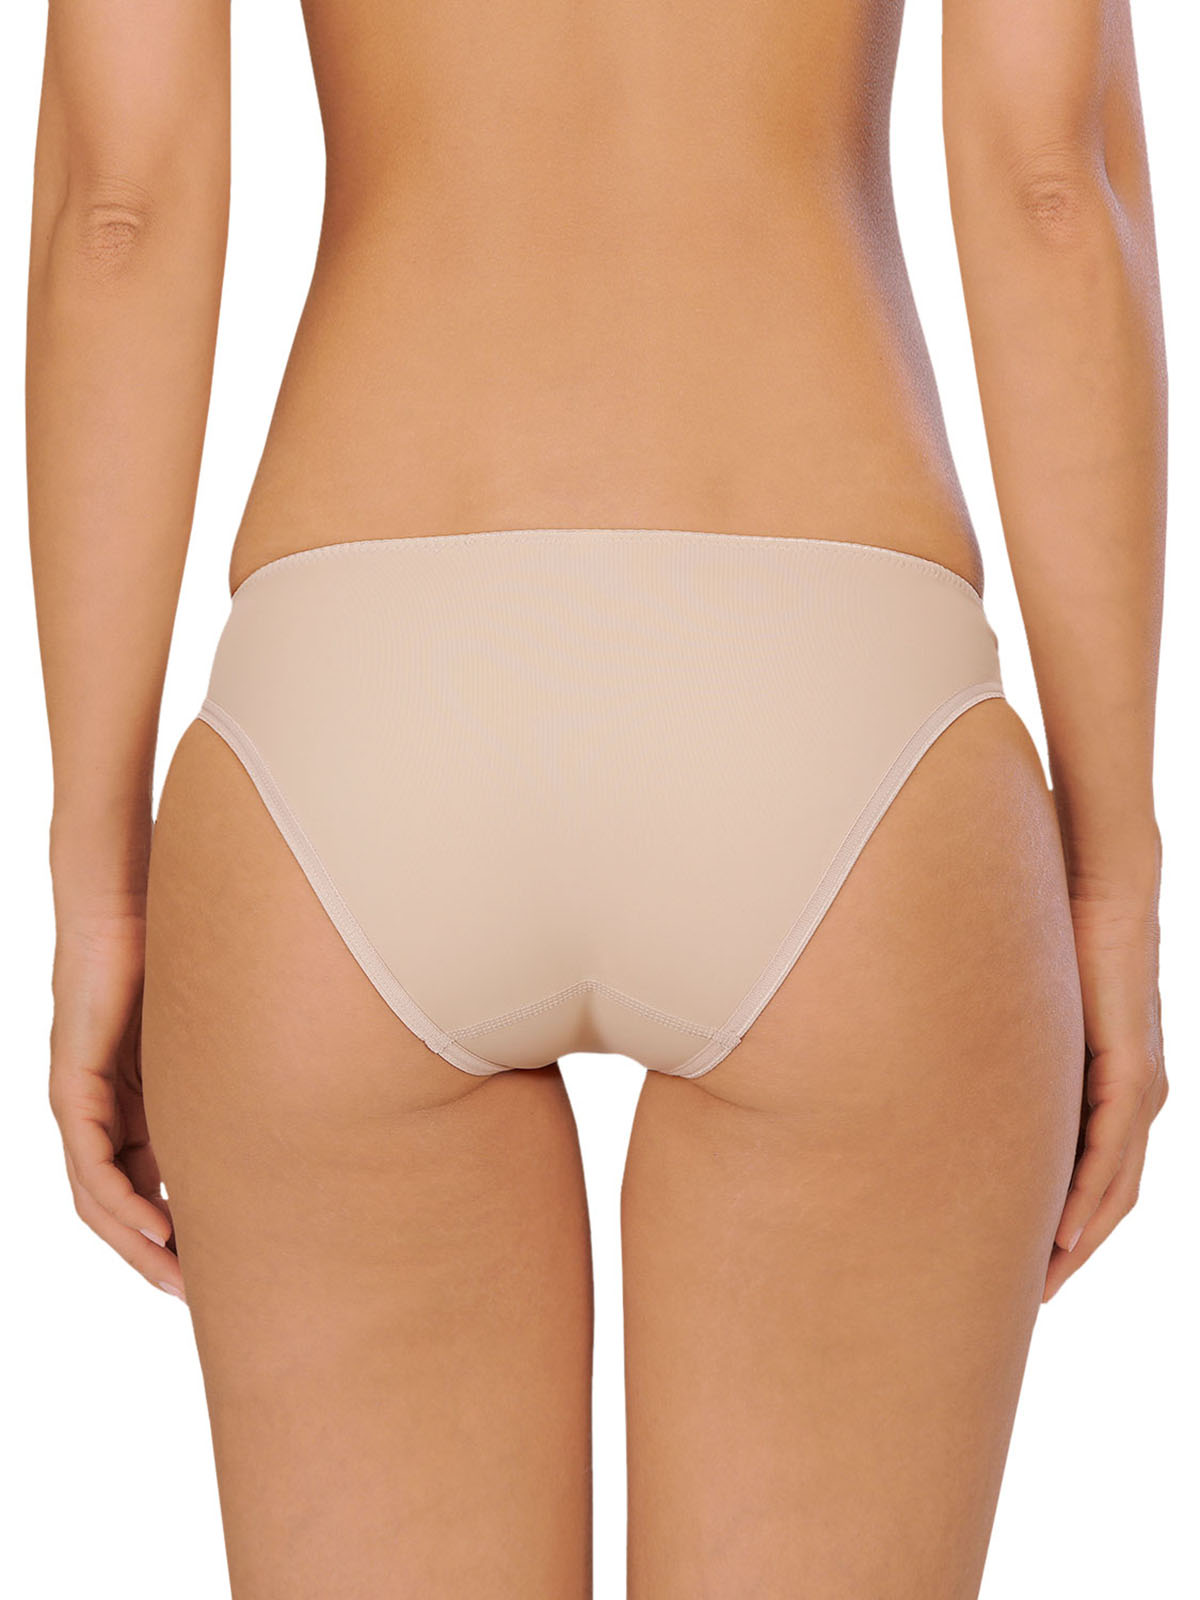 Naturana Women's Briefs 4227